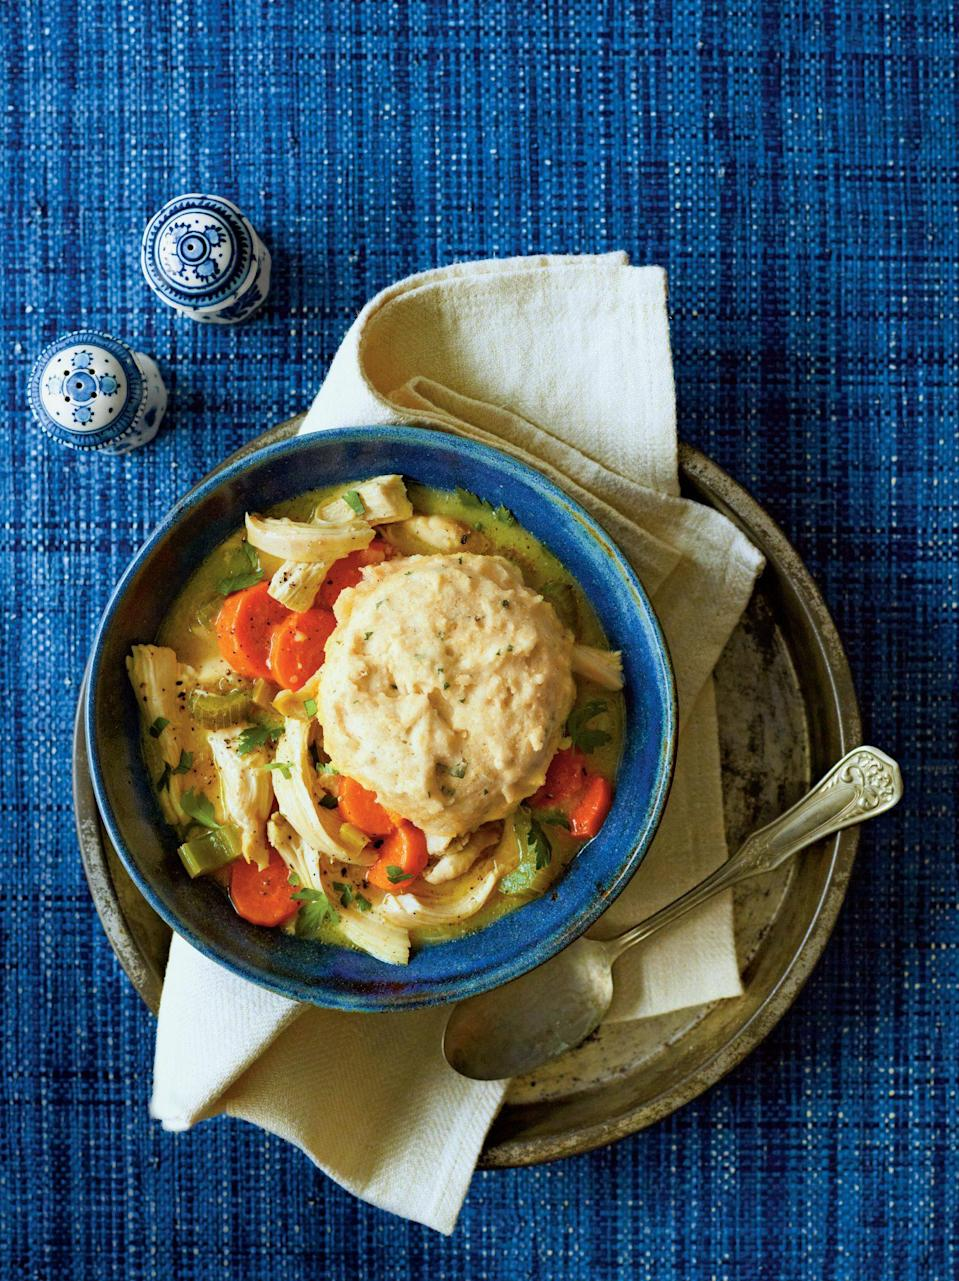 """<p><strong>Recipe: <a href=""""https://www.southernliving.com/syndication/chicken-cornbread-dumplings"""" rel=""""nofollow noopener"""" target=""""_blank"""" data-ylk=""""slk:Chicken and Cornbread Dumplings"""" class=""""link rapid-noclick-resp"""">Chicken and Cornbread Dumplings</a></strong></p> <p>All of the cooking for this recipe (yes, even the dumplings) will happen all in one pot with the help of your slow cooker. </p>"""